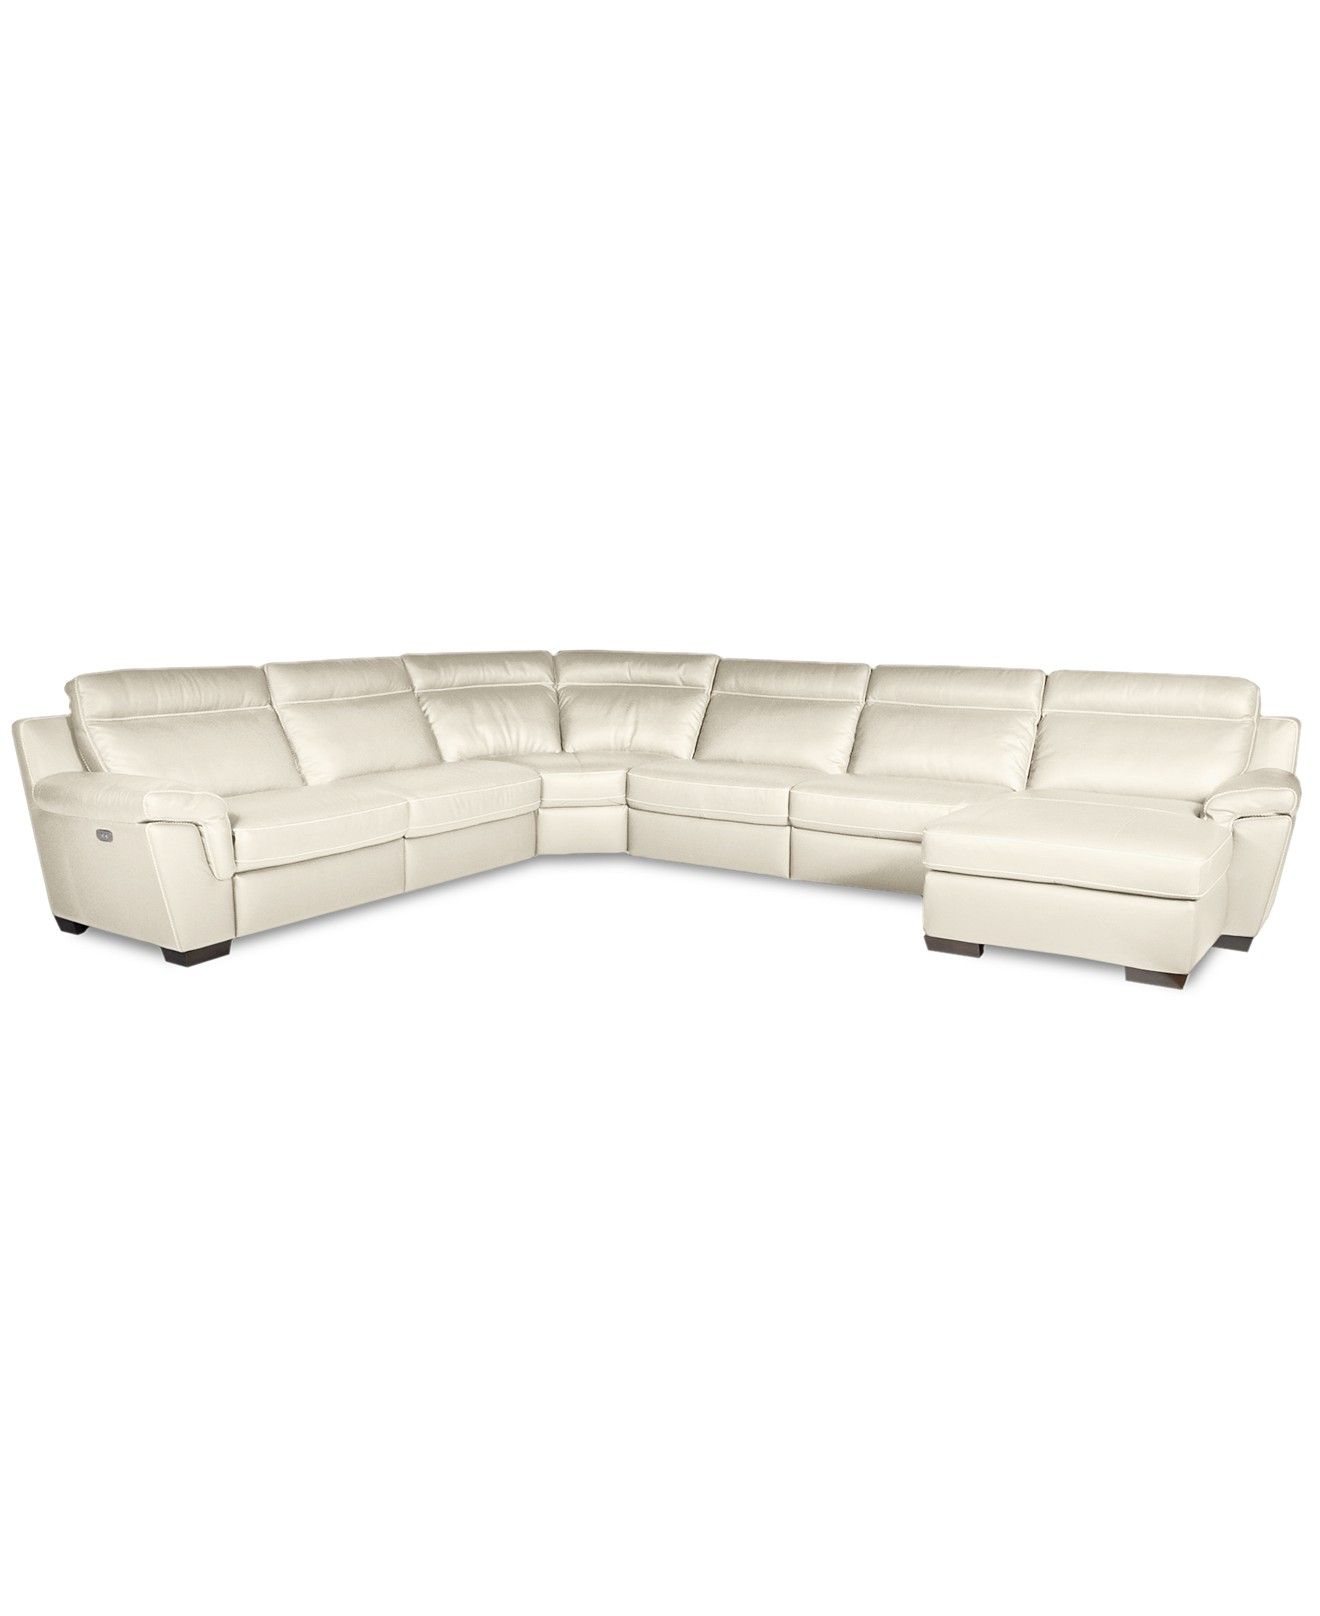 Carrera Leather sectional with chaise Natuzzi